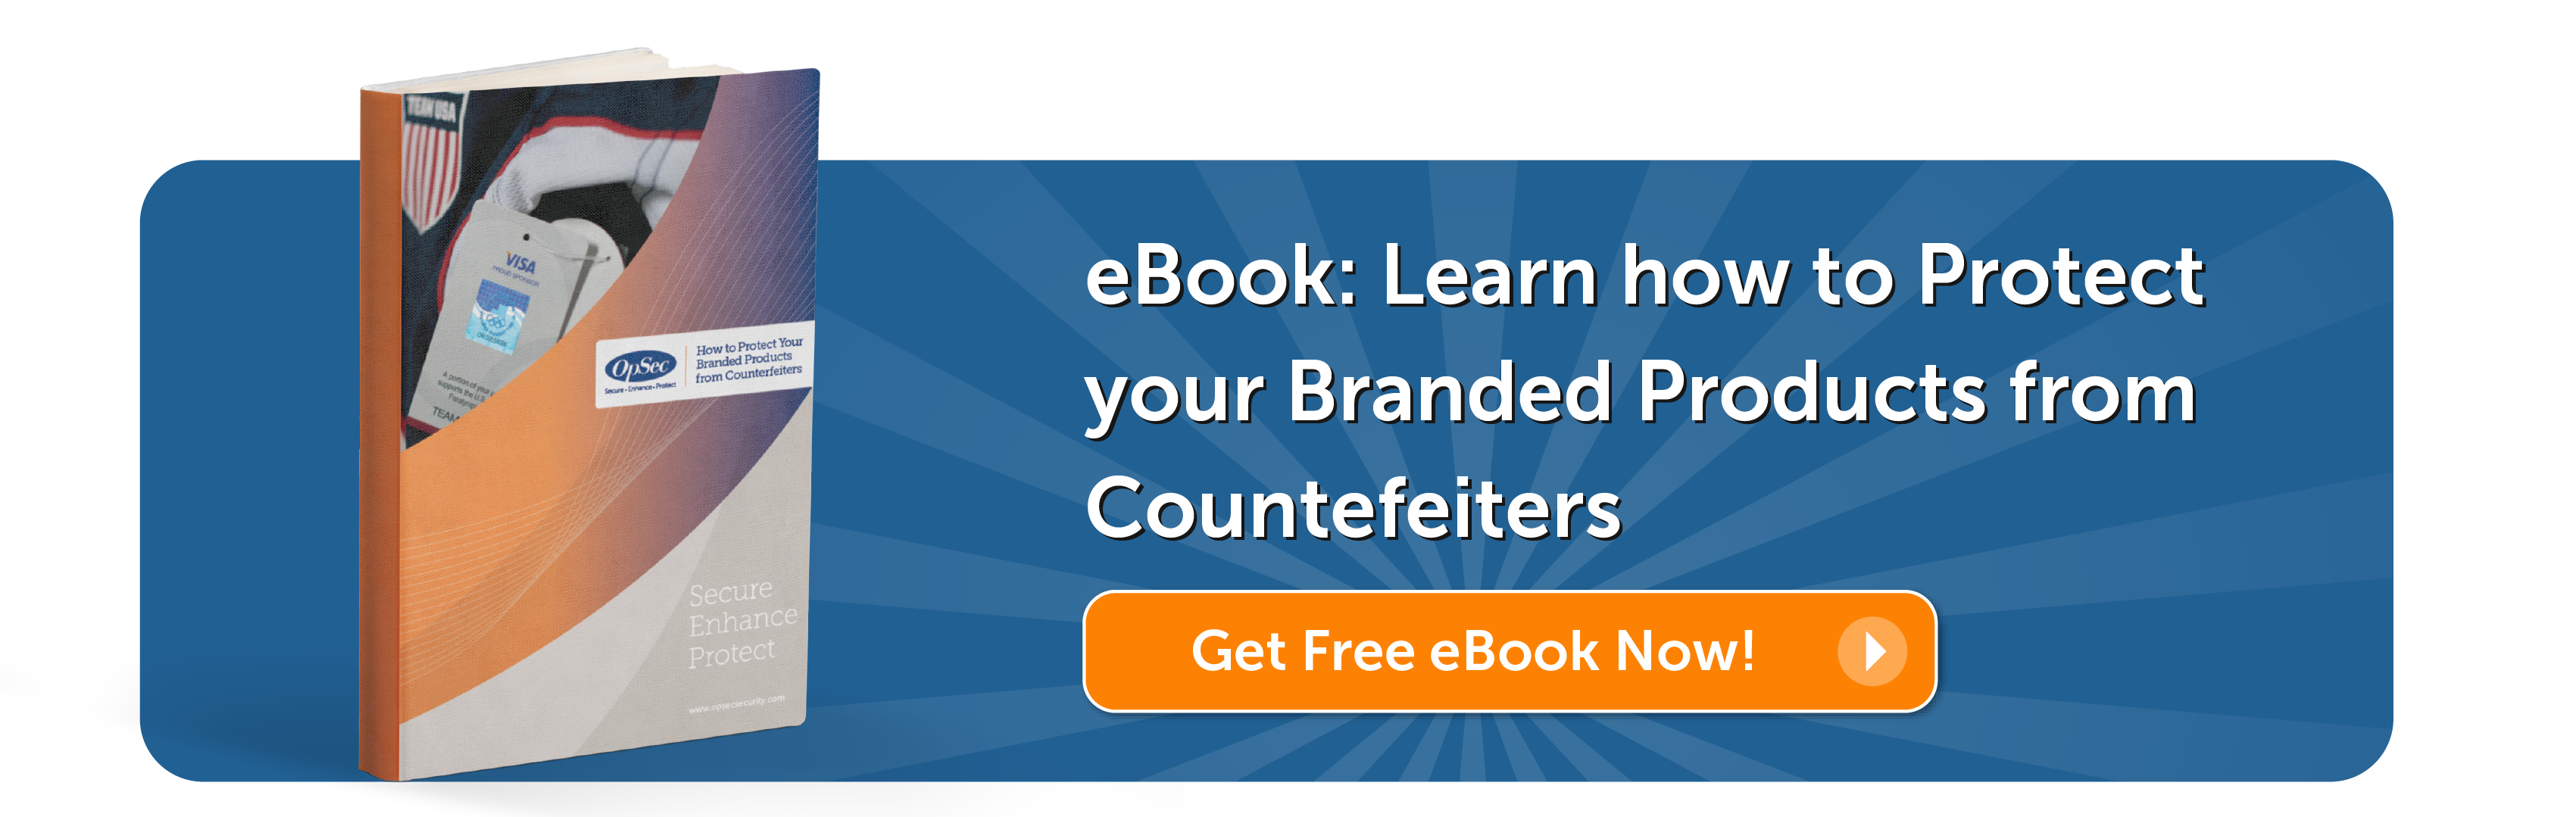 Learn how to Protect your Branded Products from Counterfeiters Ebook